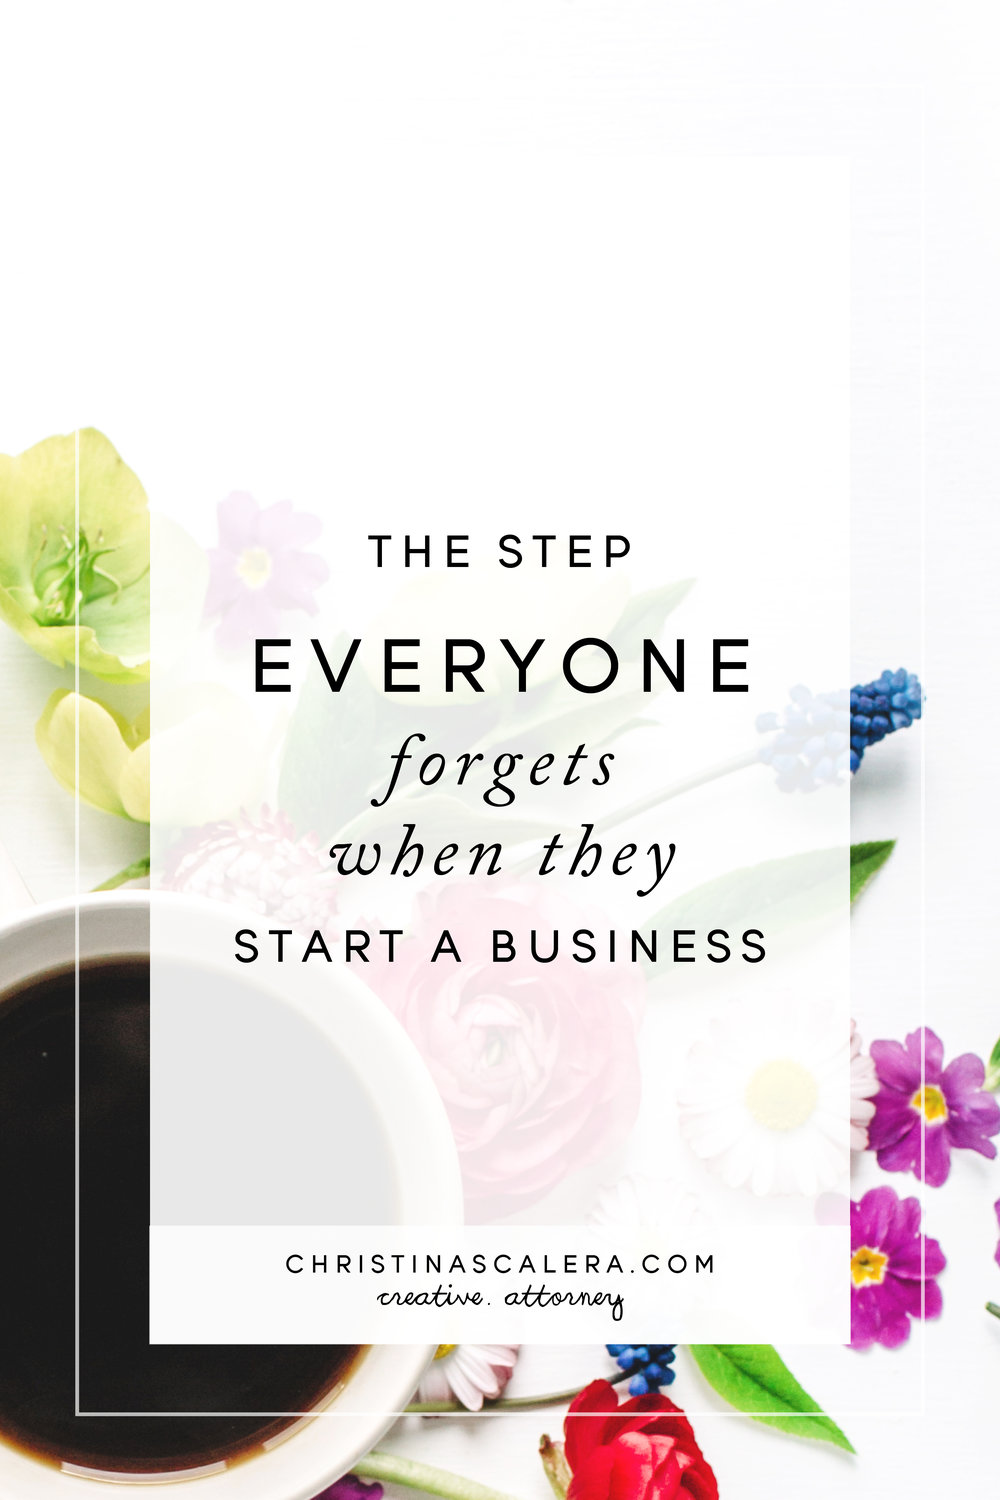 The step everyone forgets when they start a business.